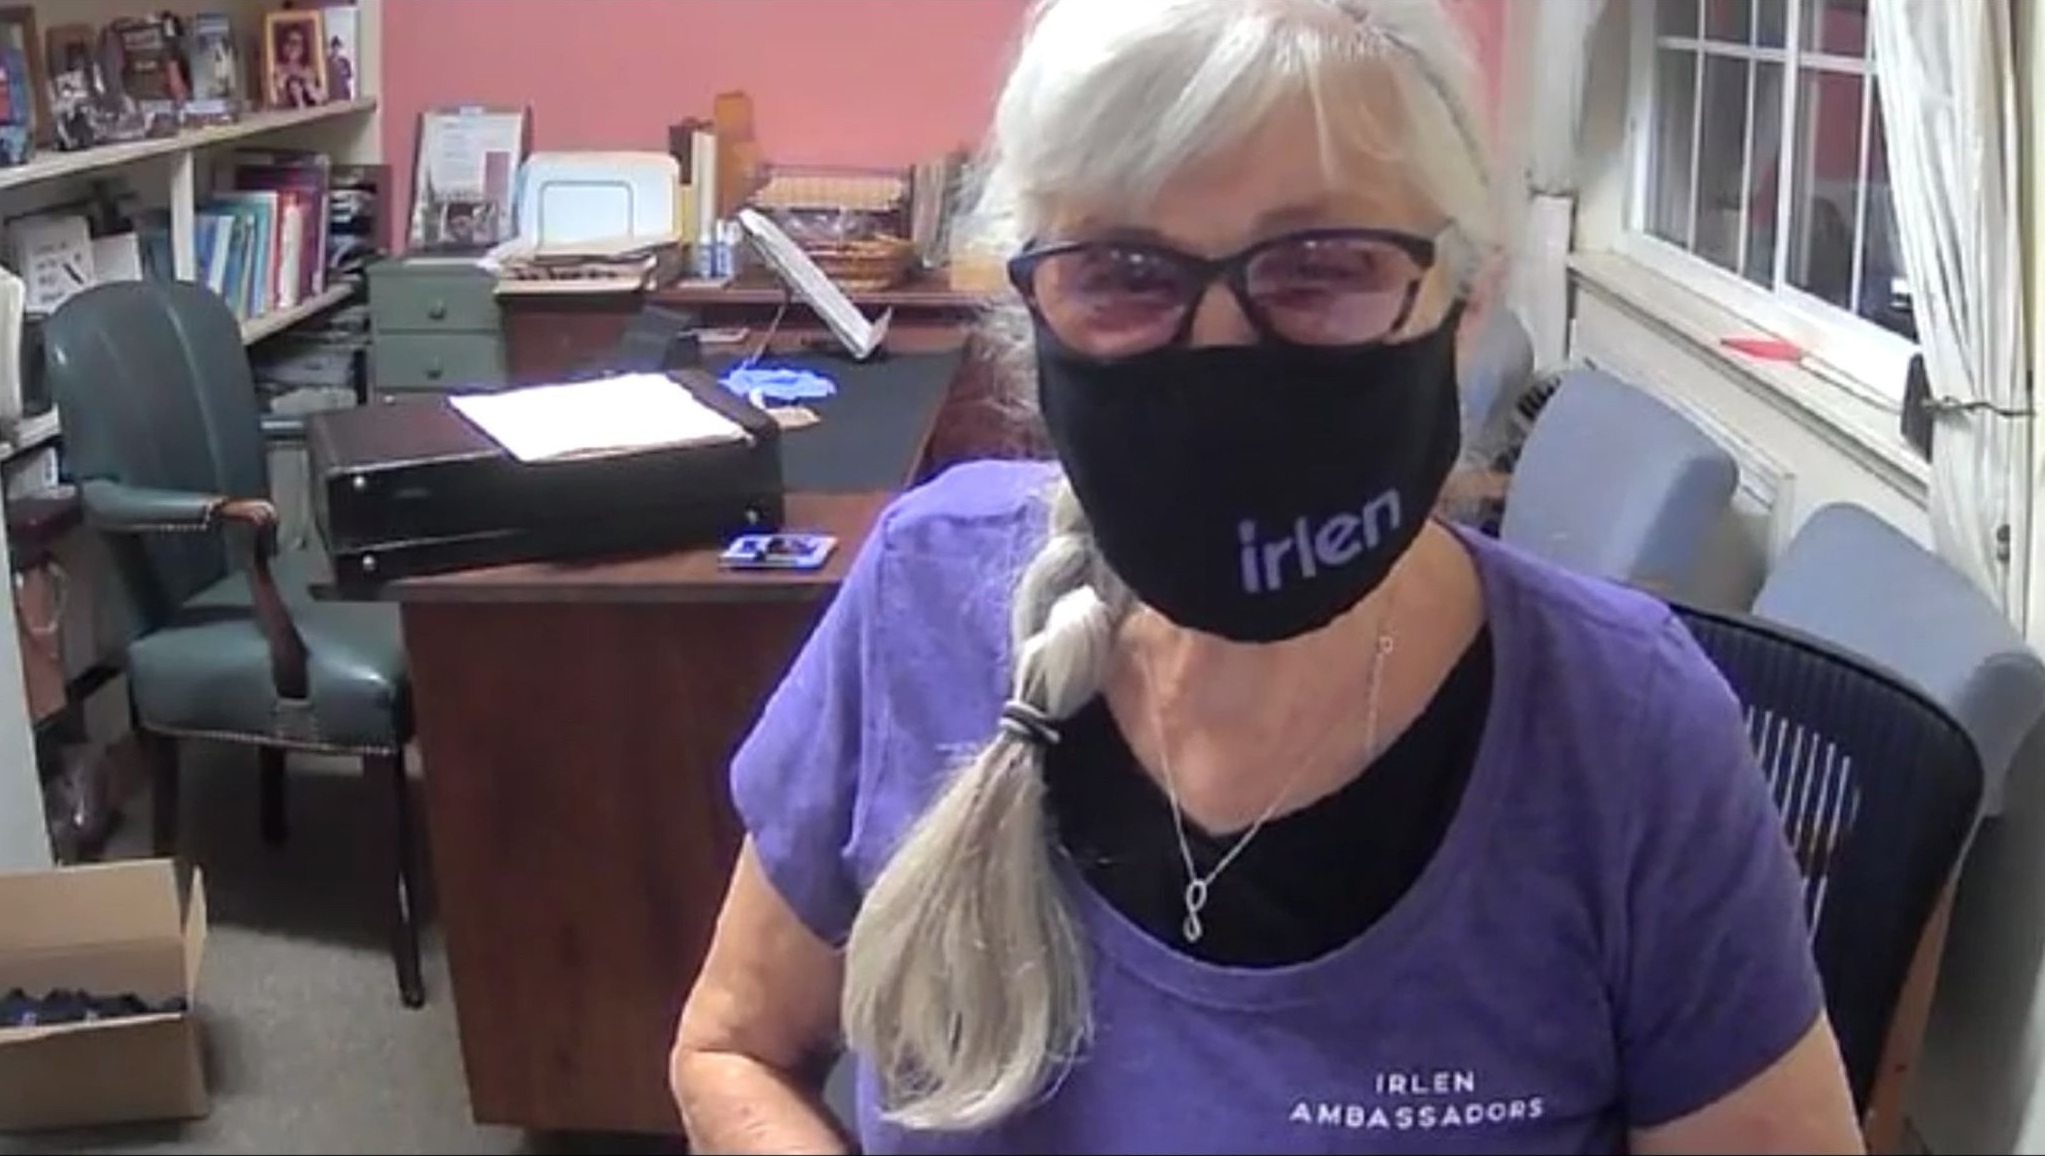 Susan with her Irlen face mask